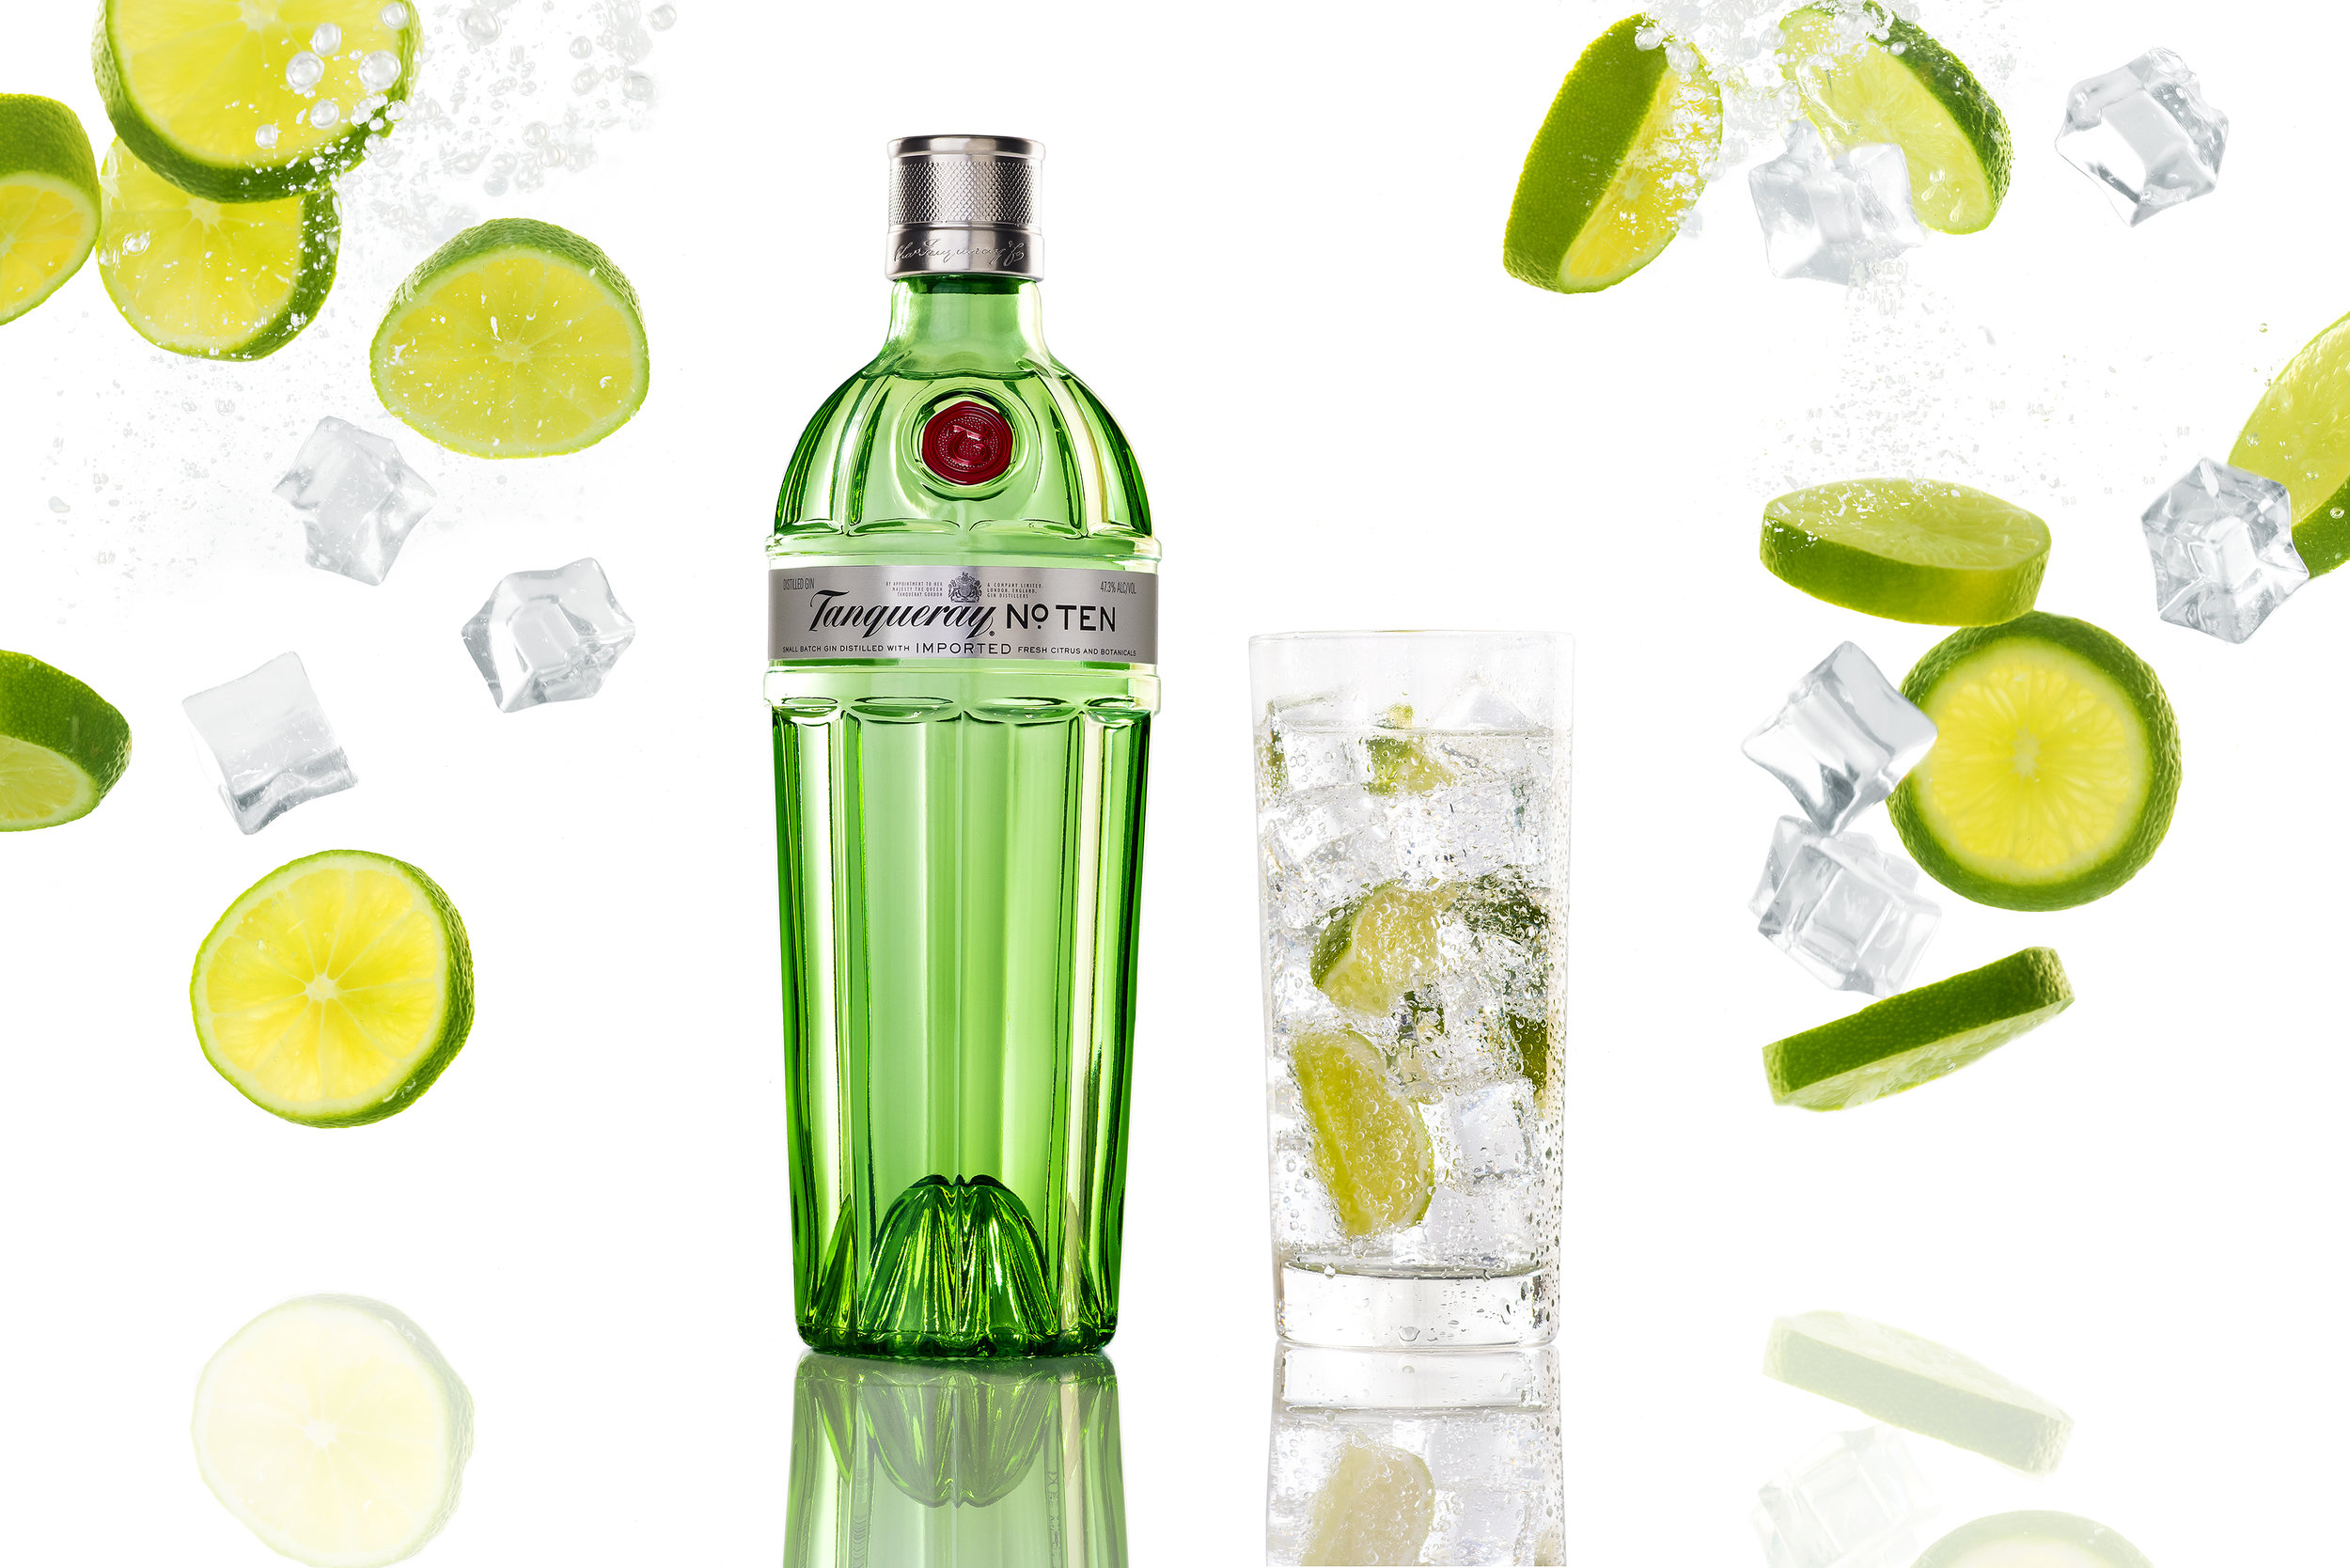 Tanqueray_Bottle_Hero_Falling_Limes-V3-Newest.jpg